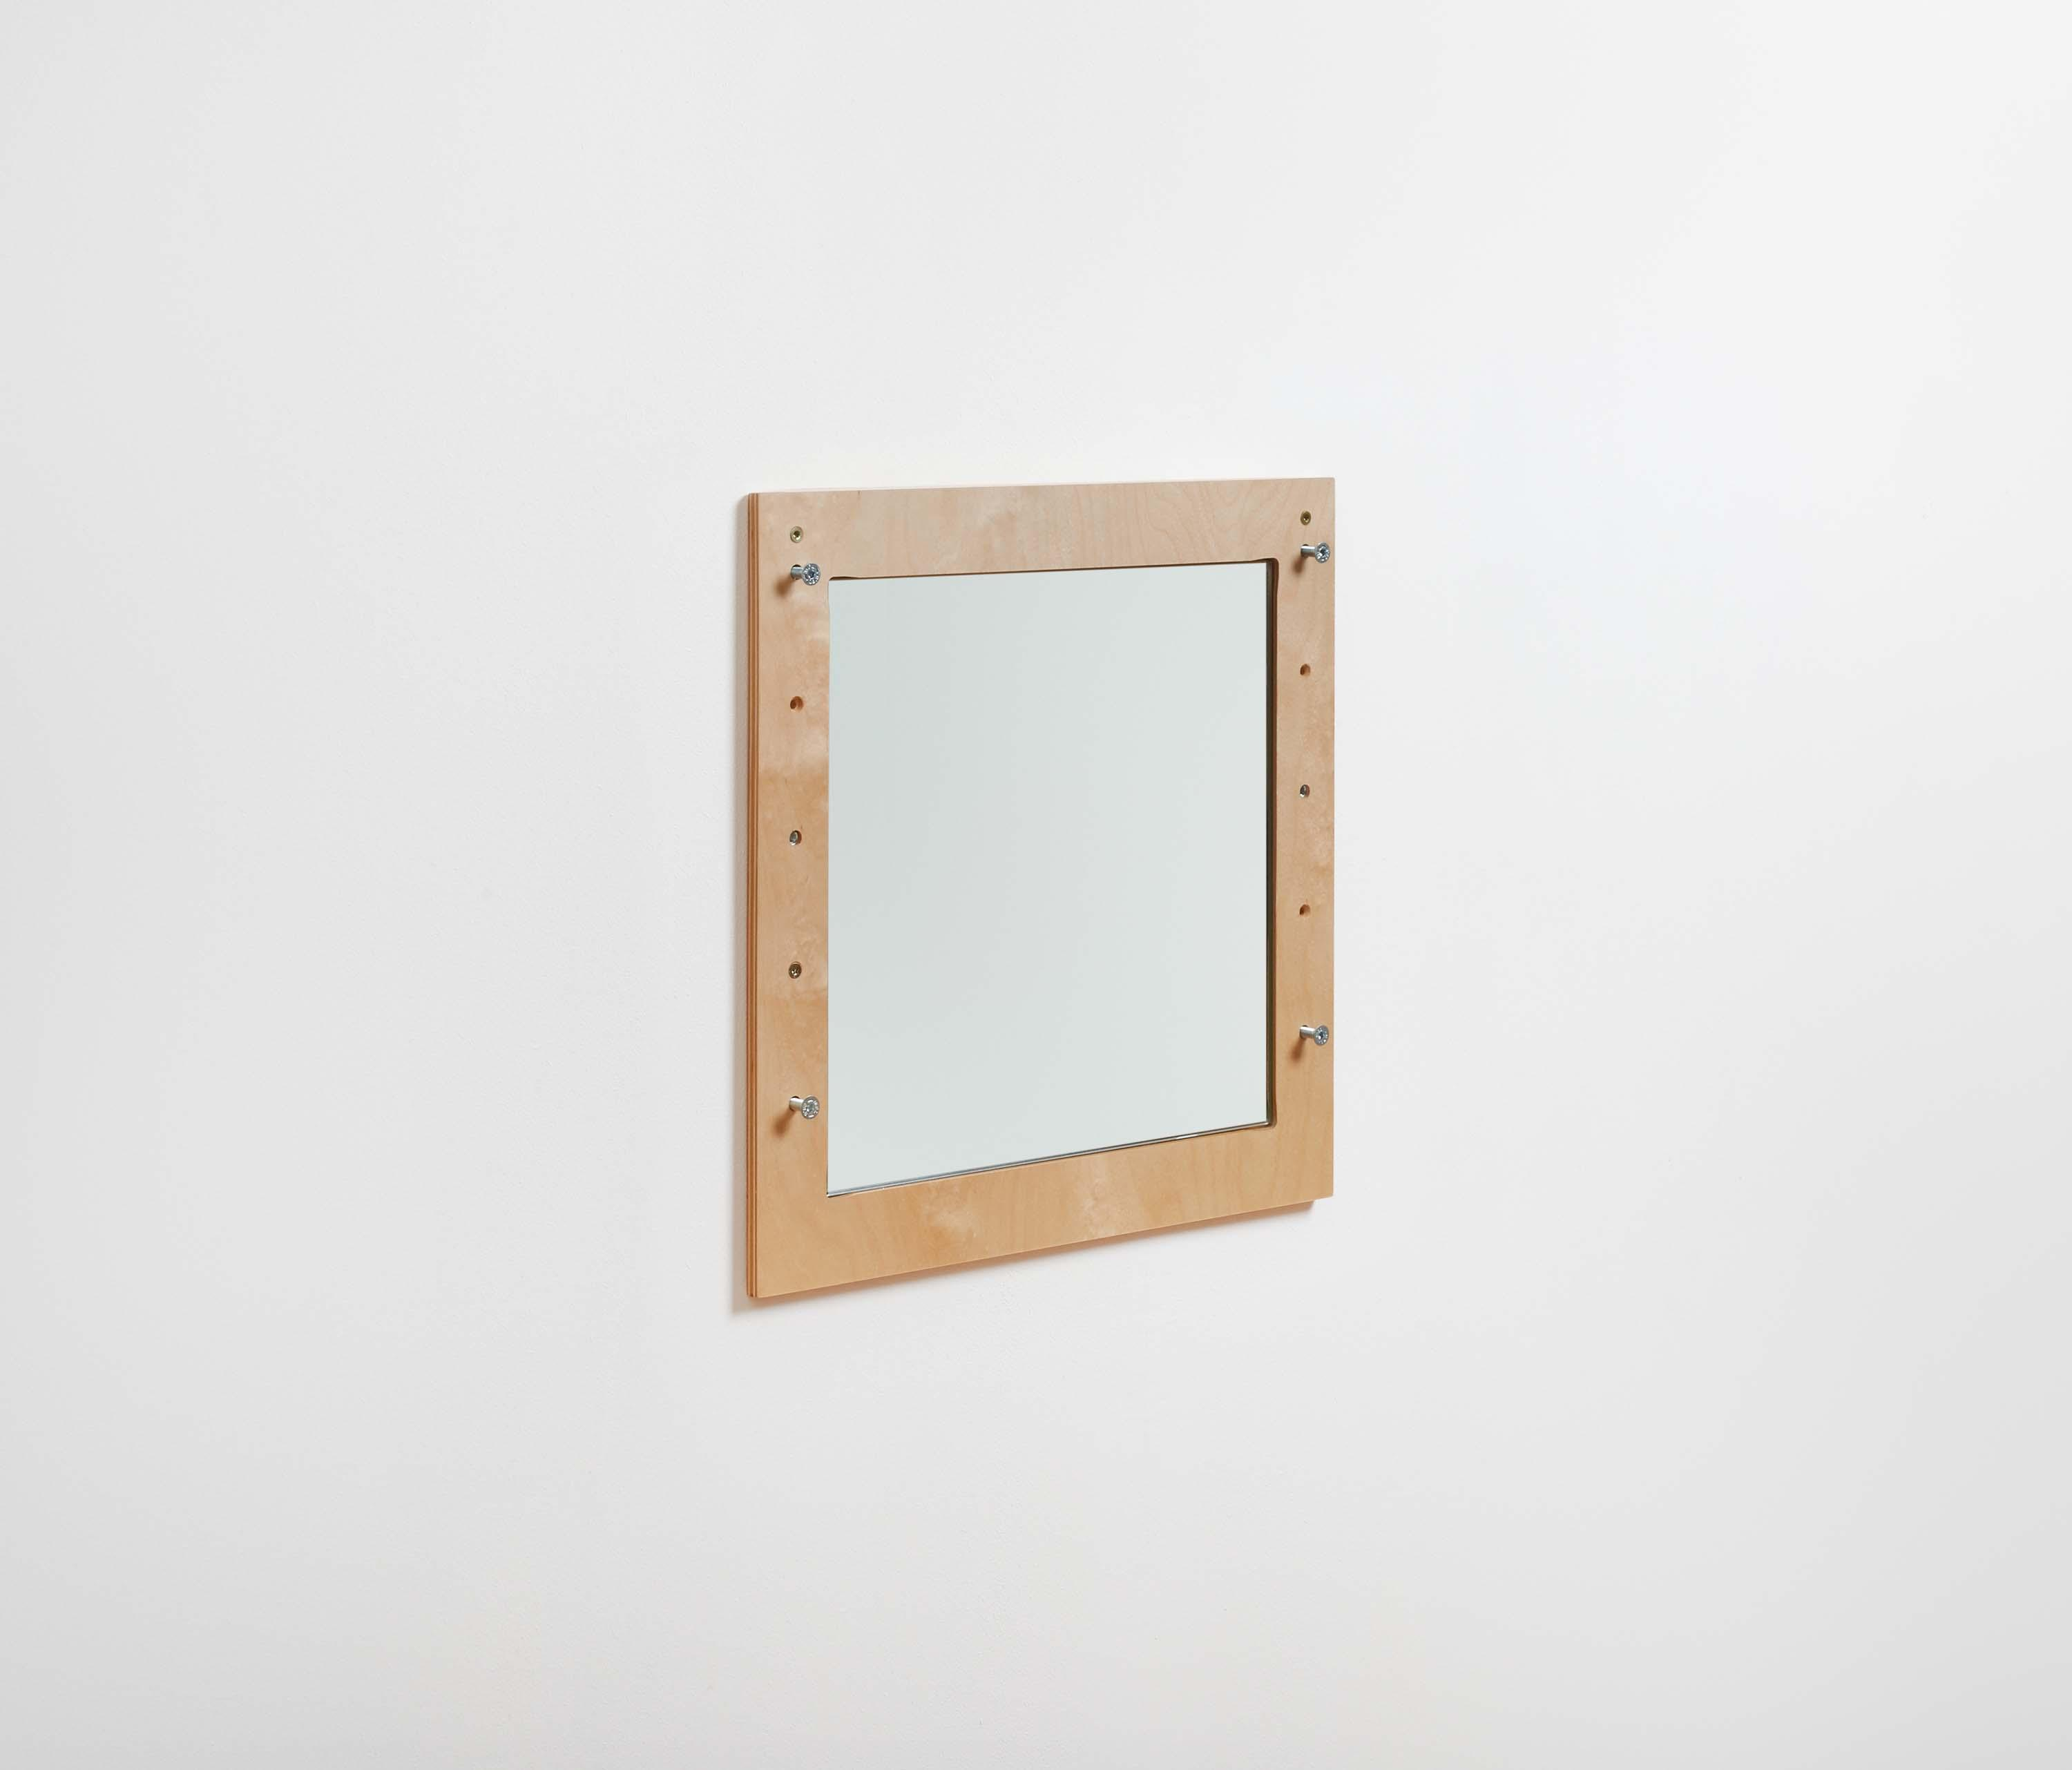 bathroom valientlux vanity lights products mirror led with image sol krugg round close up